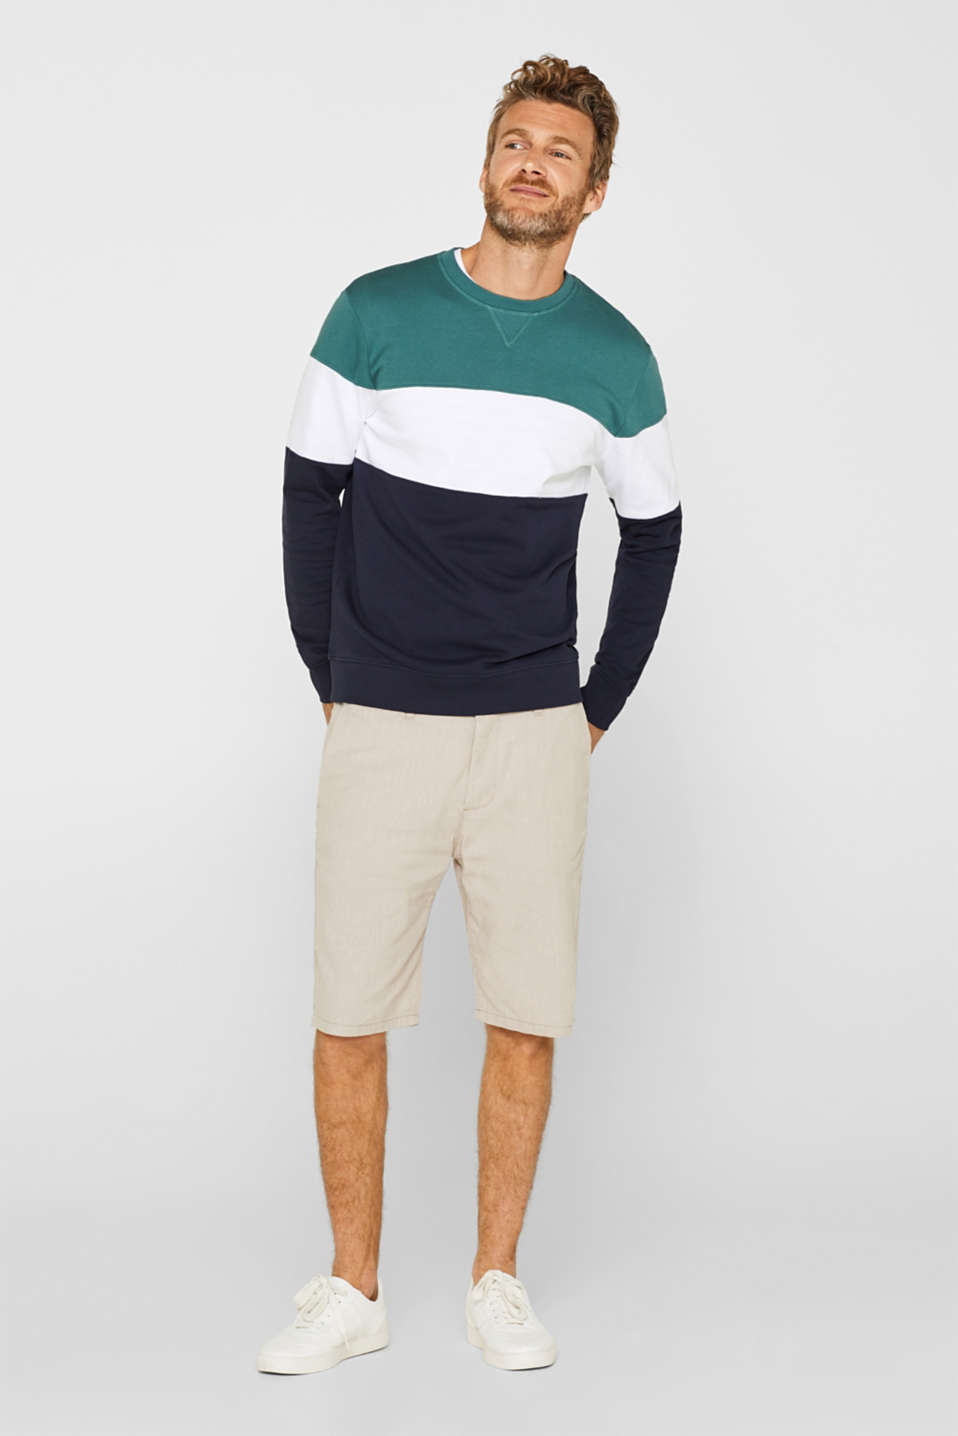 edc - Sweatshirt with block stripes, in blended cotton